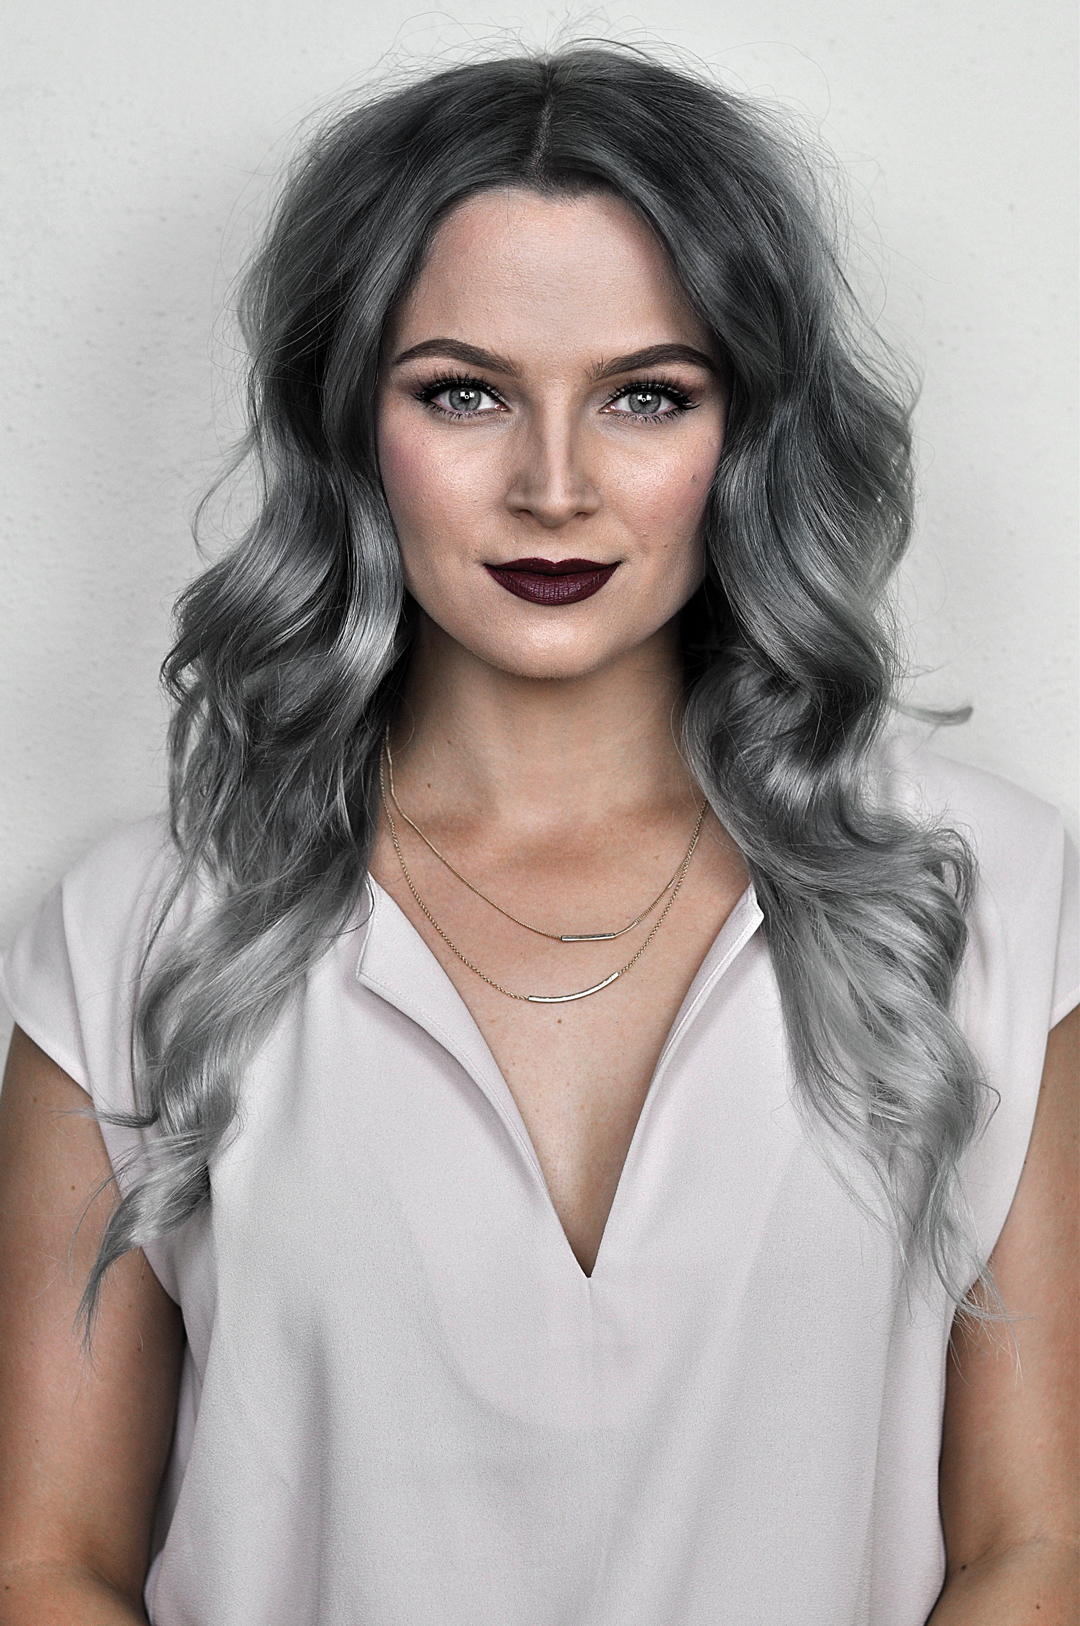 Silver ombre hair dye tutorial with overtone mayalamode check out this tutorial to learn how to get that perfect silver ombre hair at home baditri Images